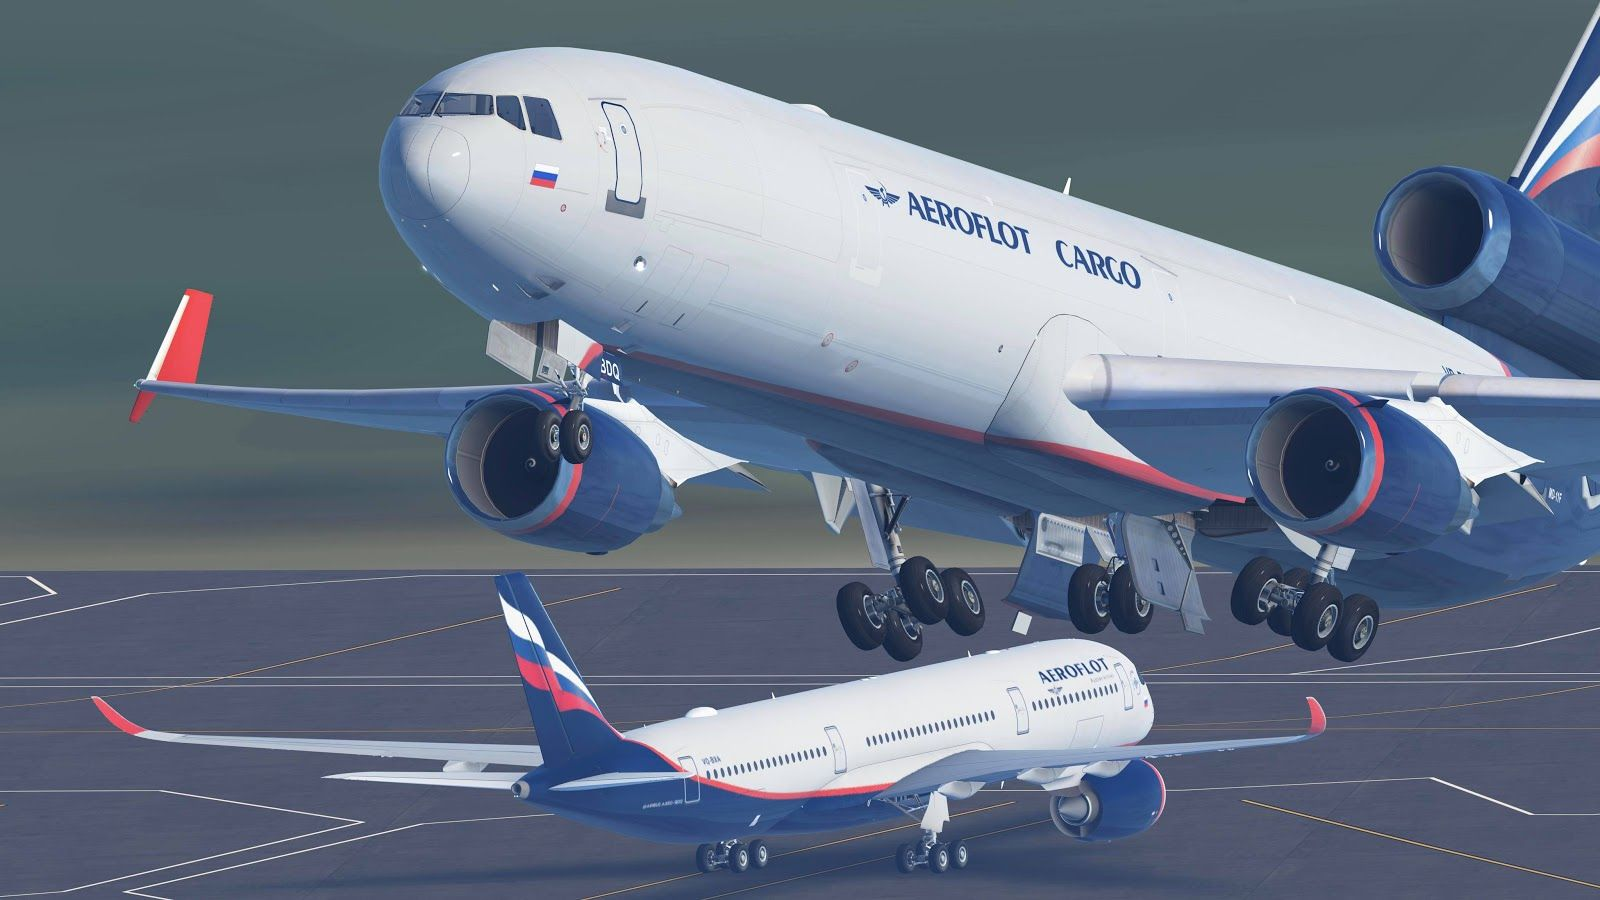 Aeroflot Cargo MD-11F taking off in Infinite Flight